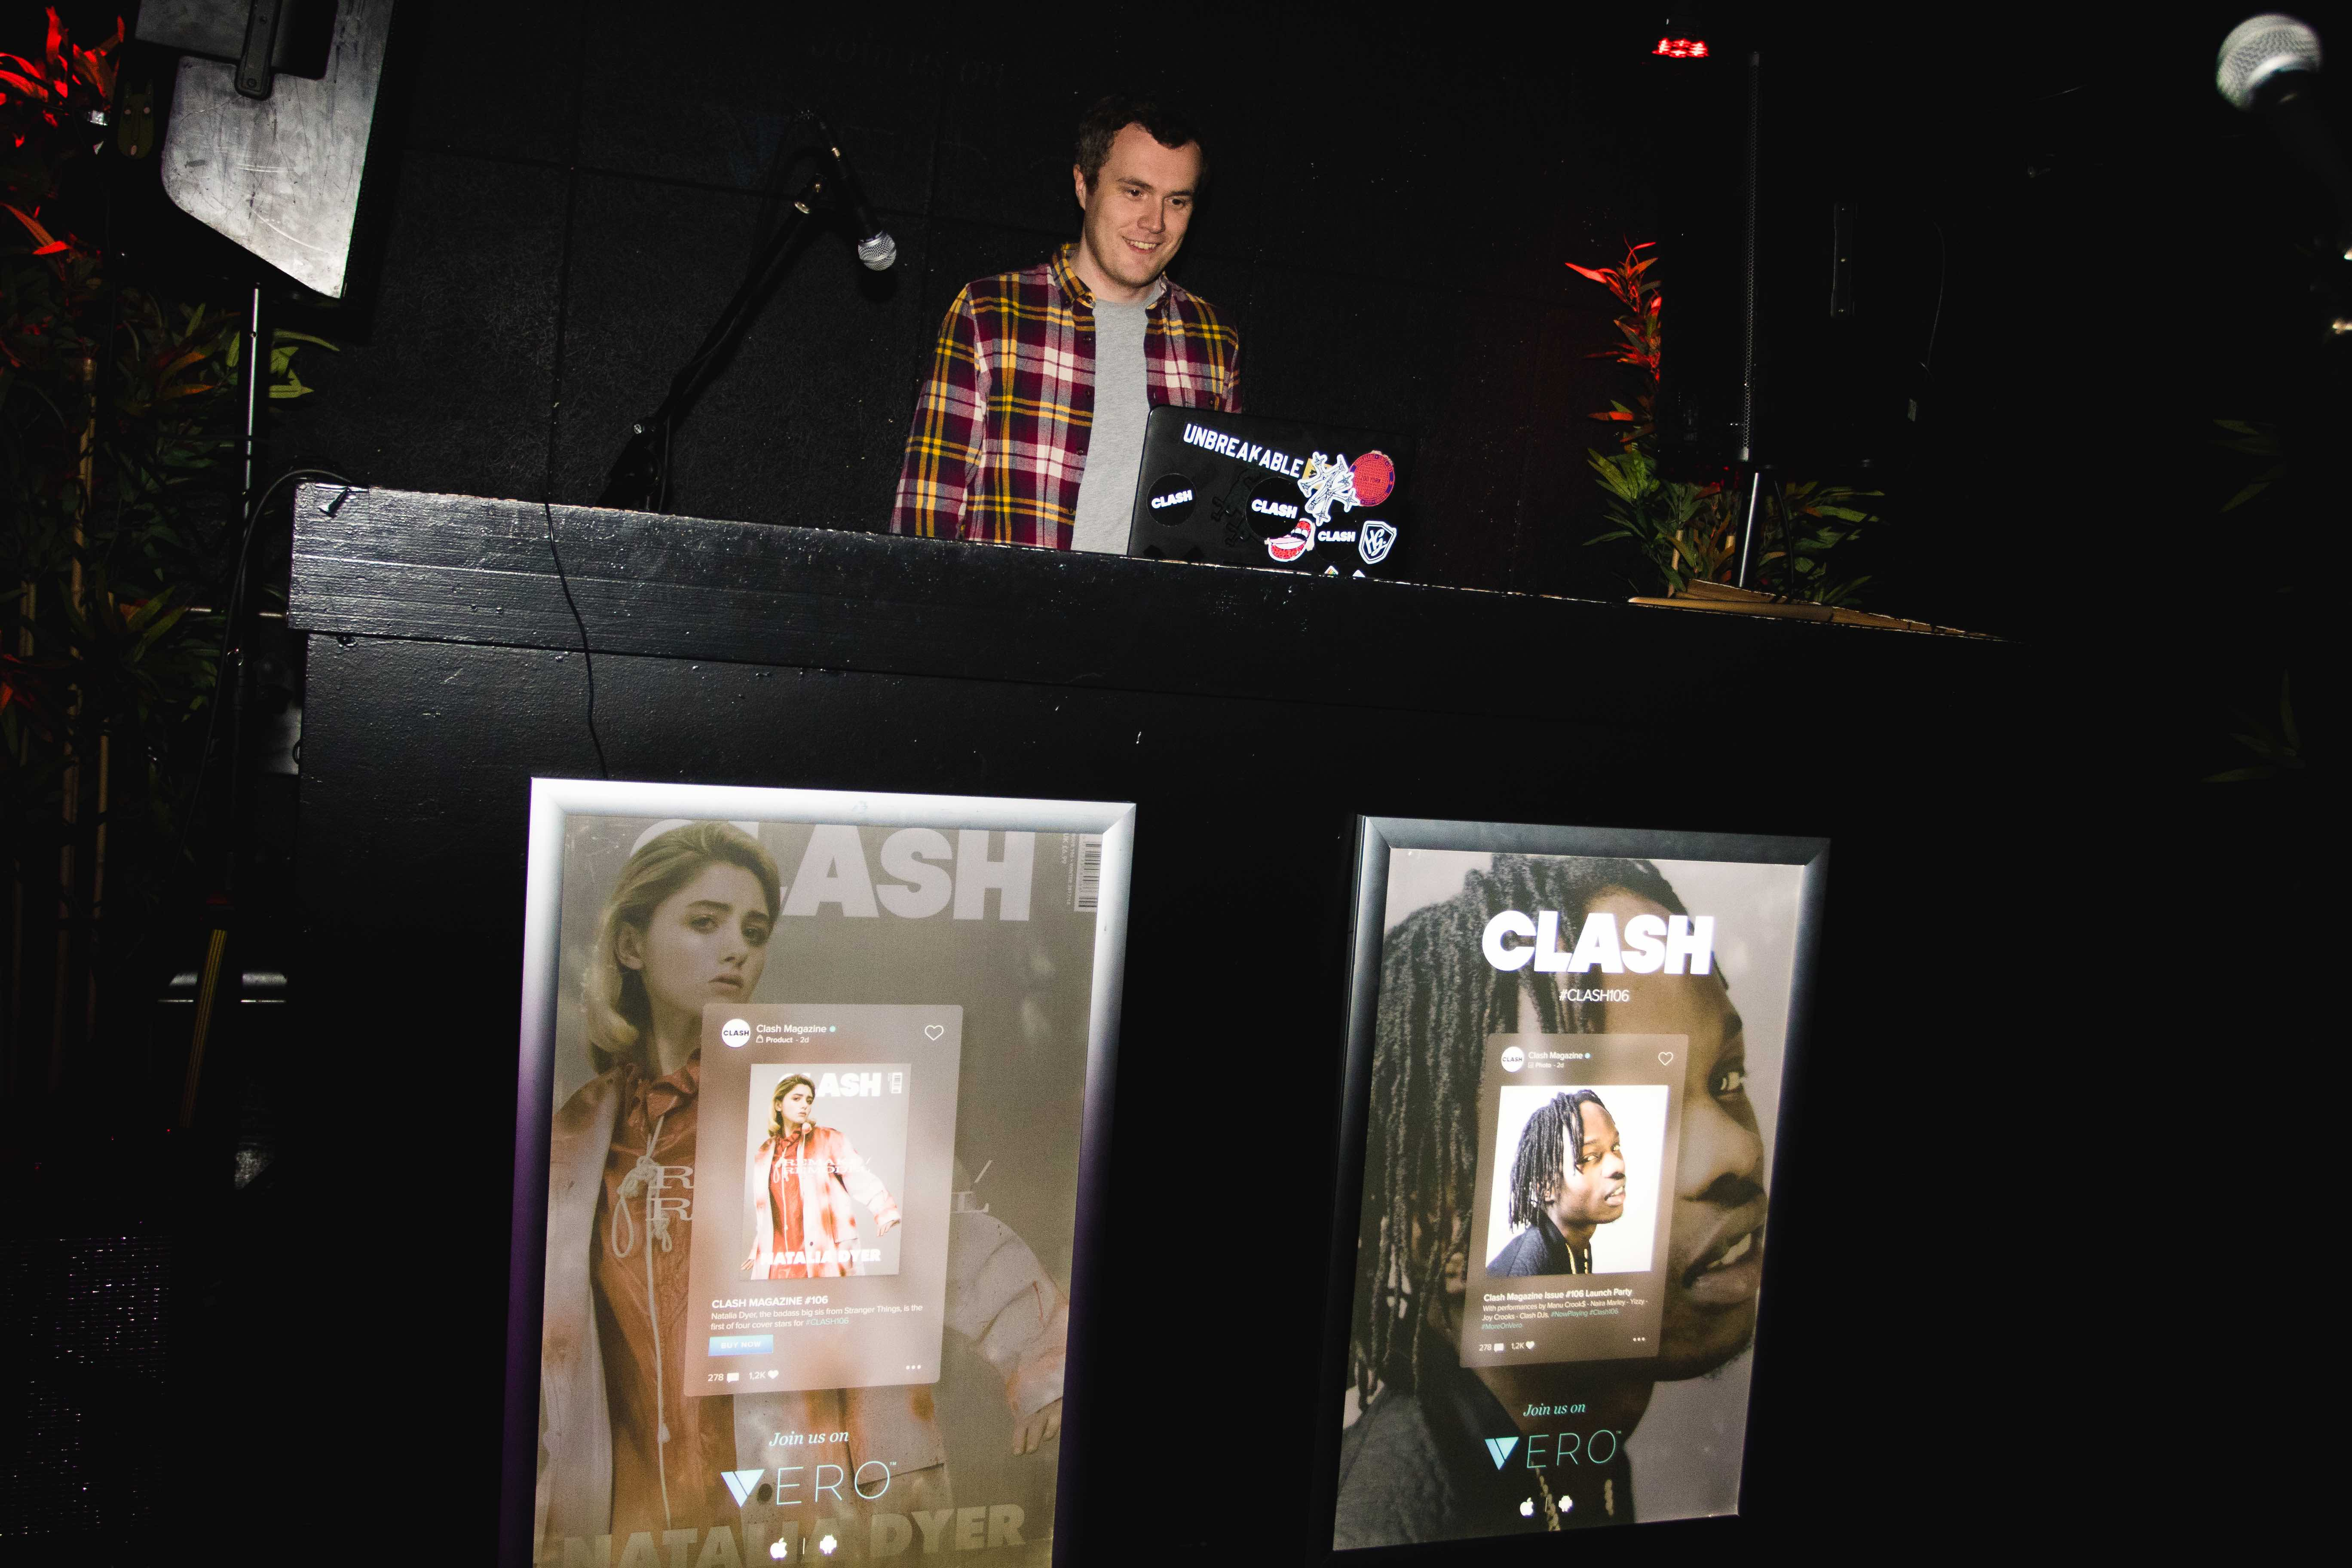 Clash DJs, by Ben McQuaide